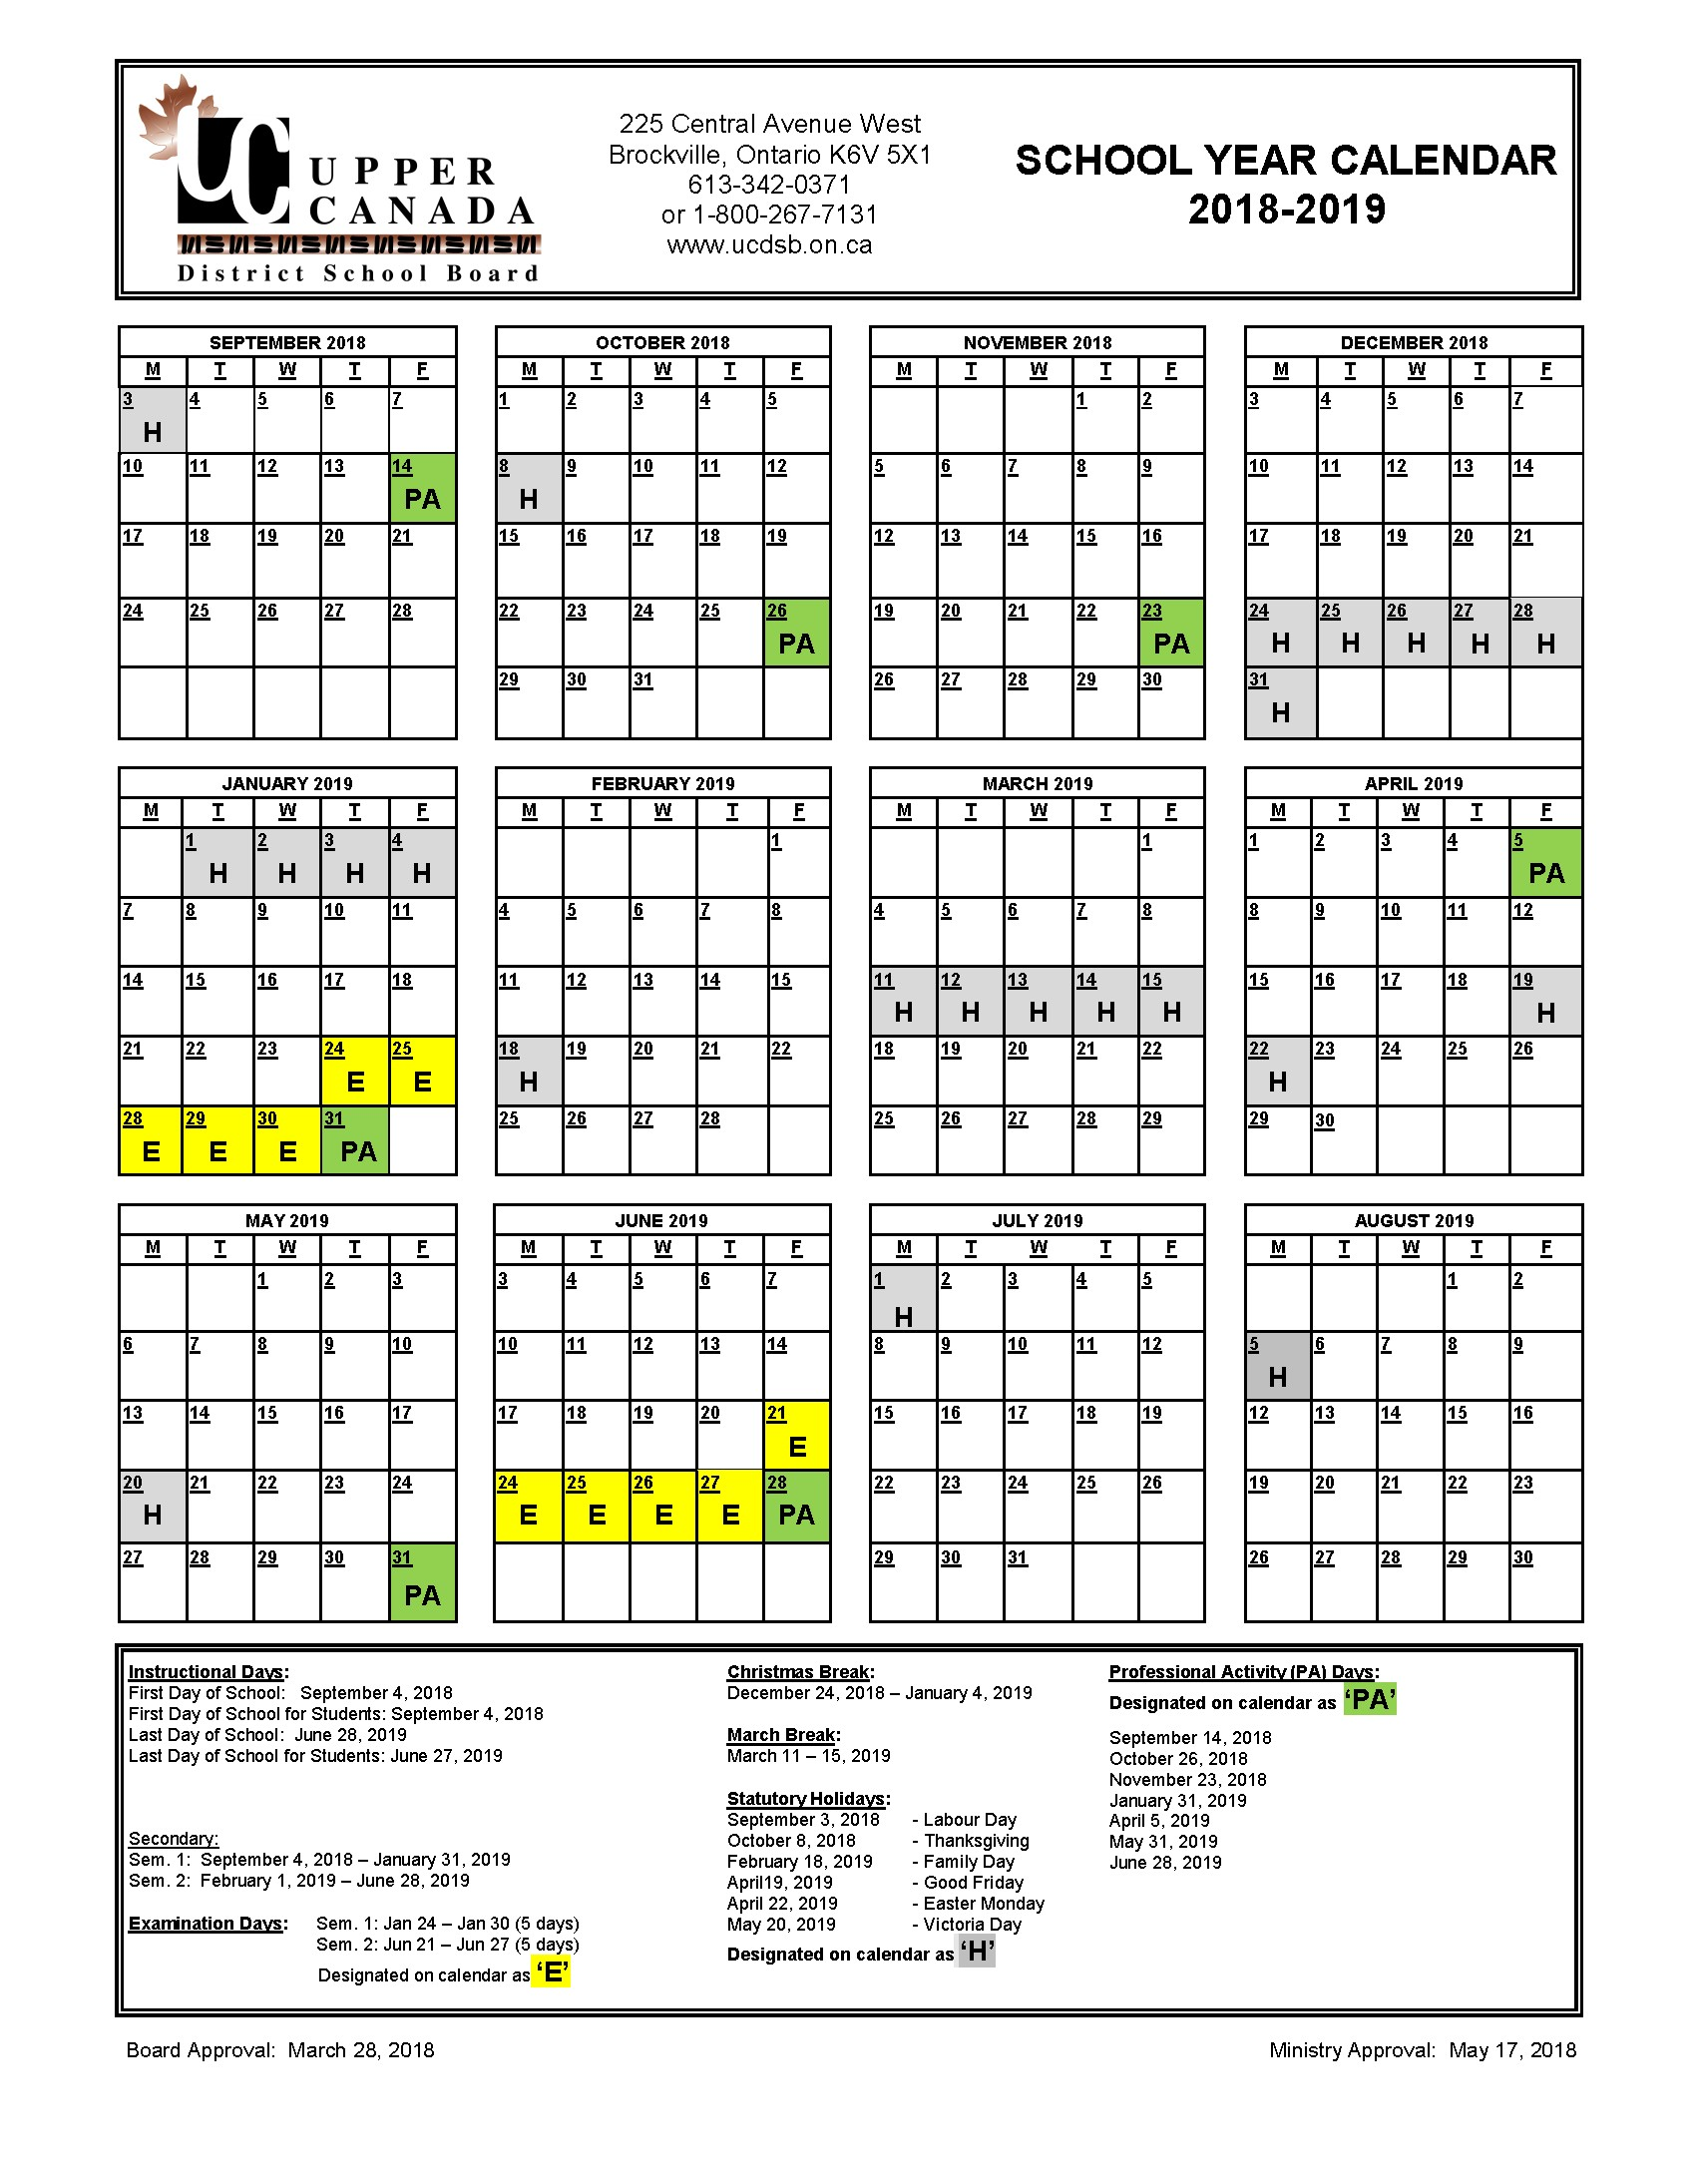 Calendario Escolar 2019 Kinder Más Reciente 2018 2019 School Year Calendar Upper Canada District School Board Of Calendario Escolar 2019 Kinder Más Recientes District Calendar – District Calendar – Grandview C 4 School District